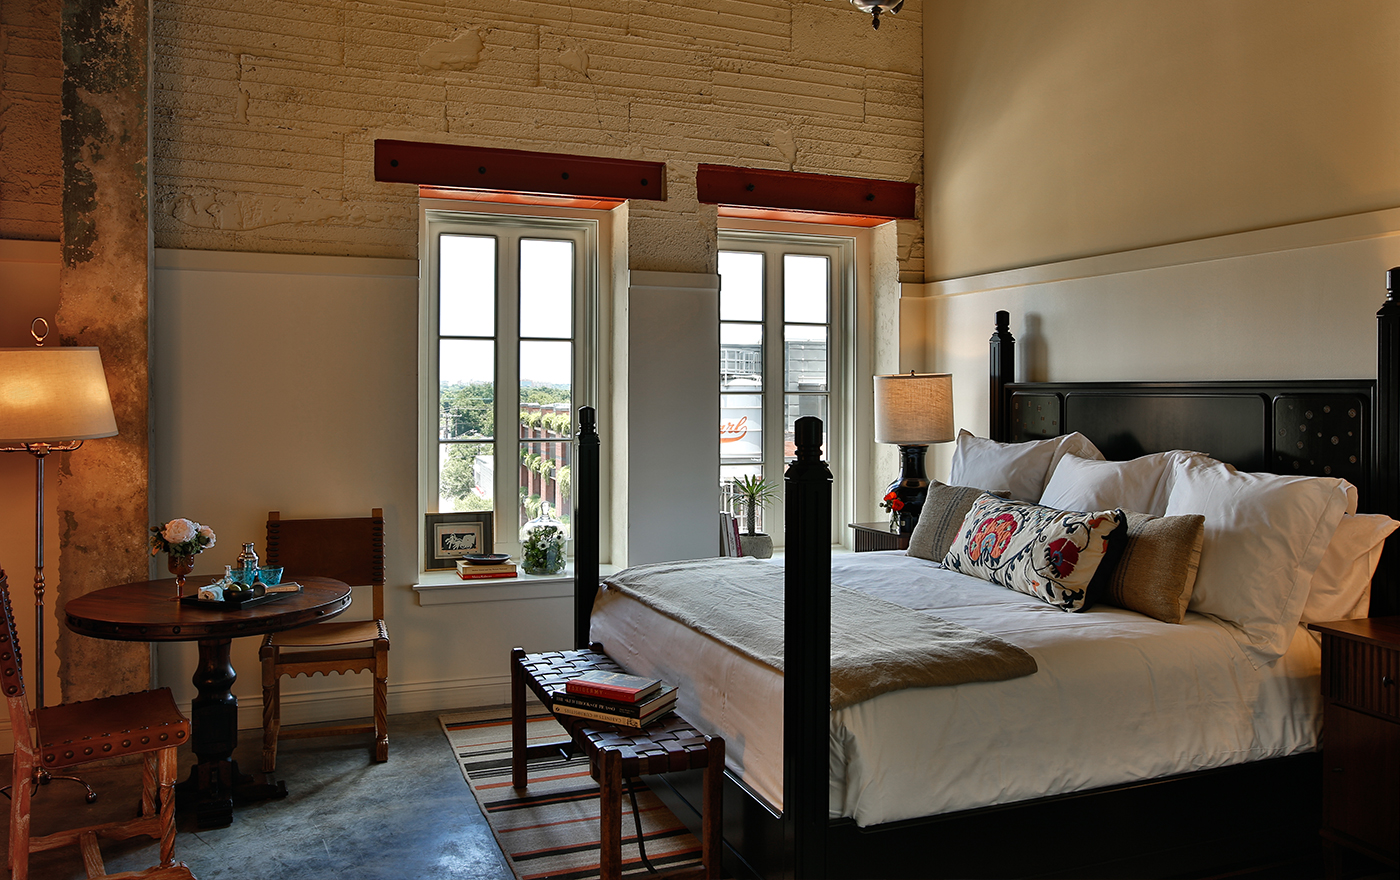 A picture of the bedroom at Hotel Emma's Landmark rooms. Pictured is a king sized bed with a table and two chairs next to a window.